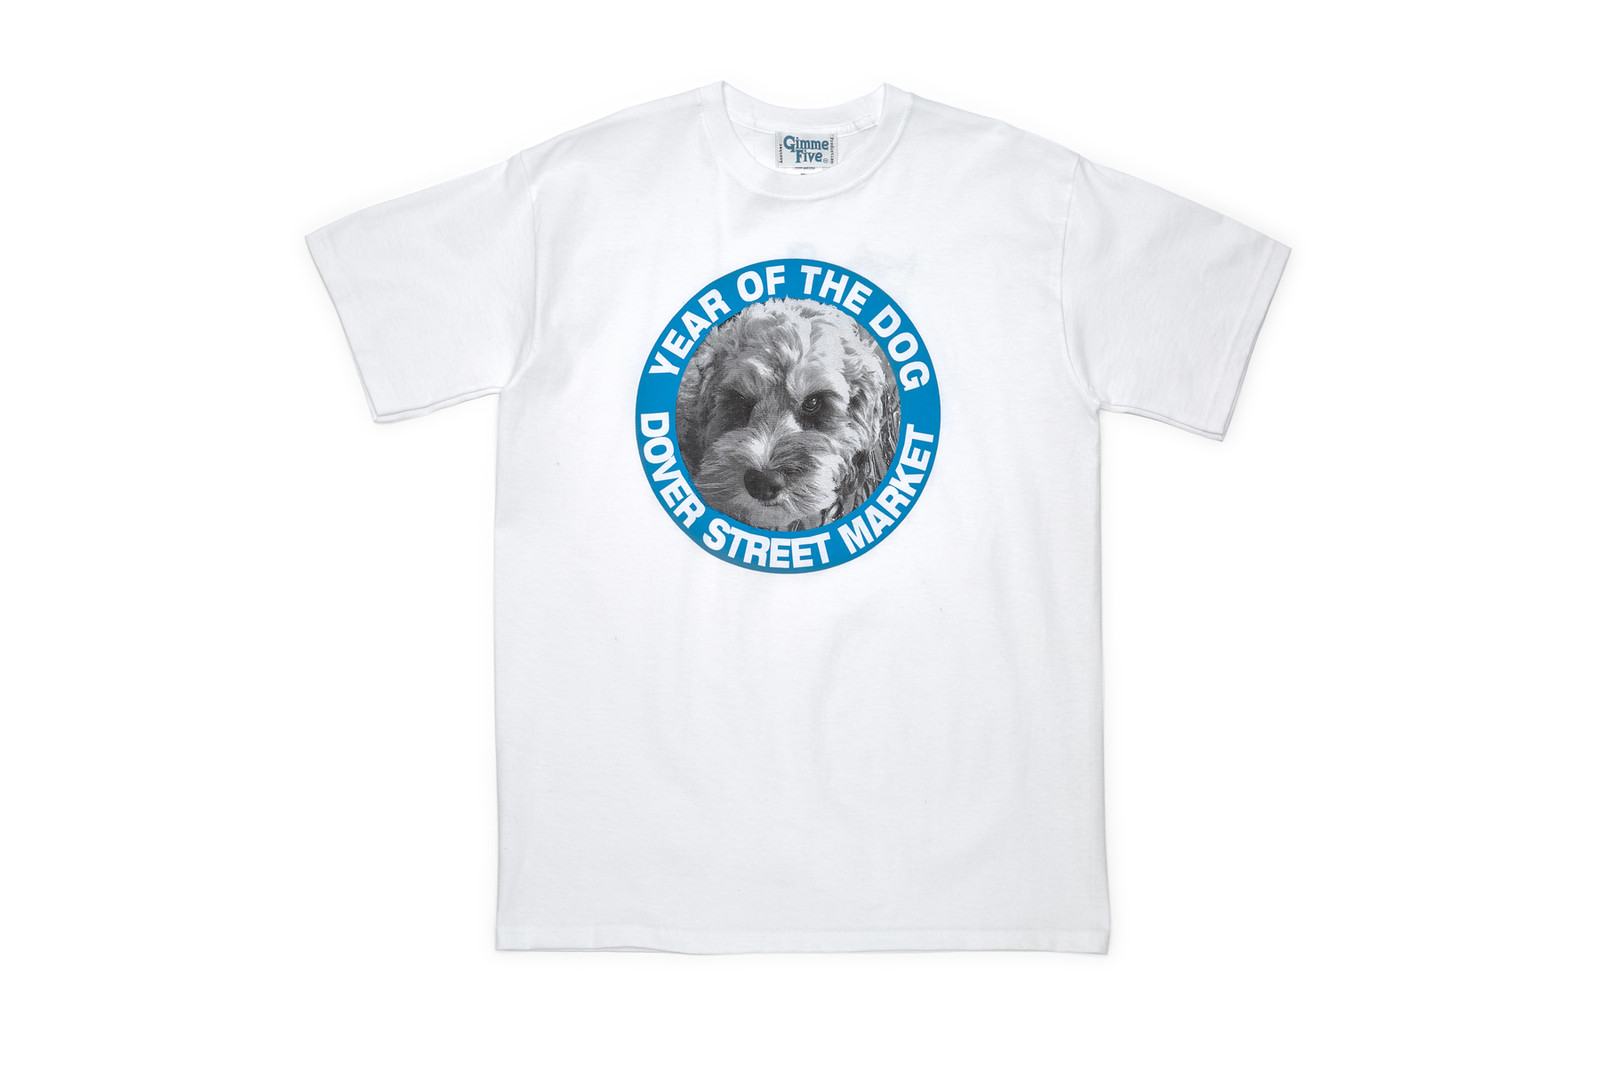 Dover Street Market Chinese New Year T-shirt Capsule collection year of the dog BAPE a bathing ape Noah Stussy Expert Horror NikeLab Avi Gold Better™ Bianca Chandon Doublet Dreamland Syndicate Richardson Undercover Nick Cave 8-ball gimme 5 iggy werk magazine